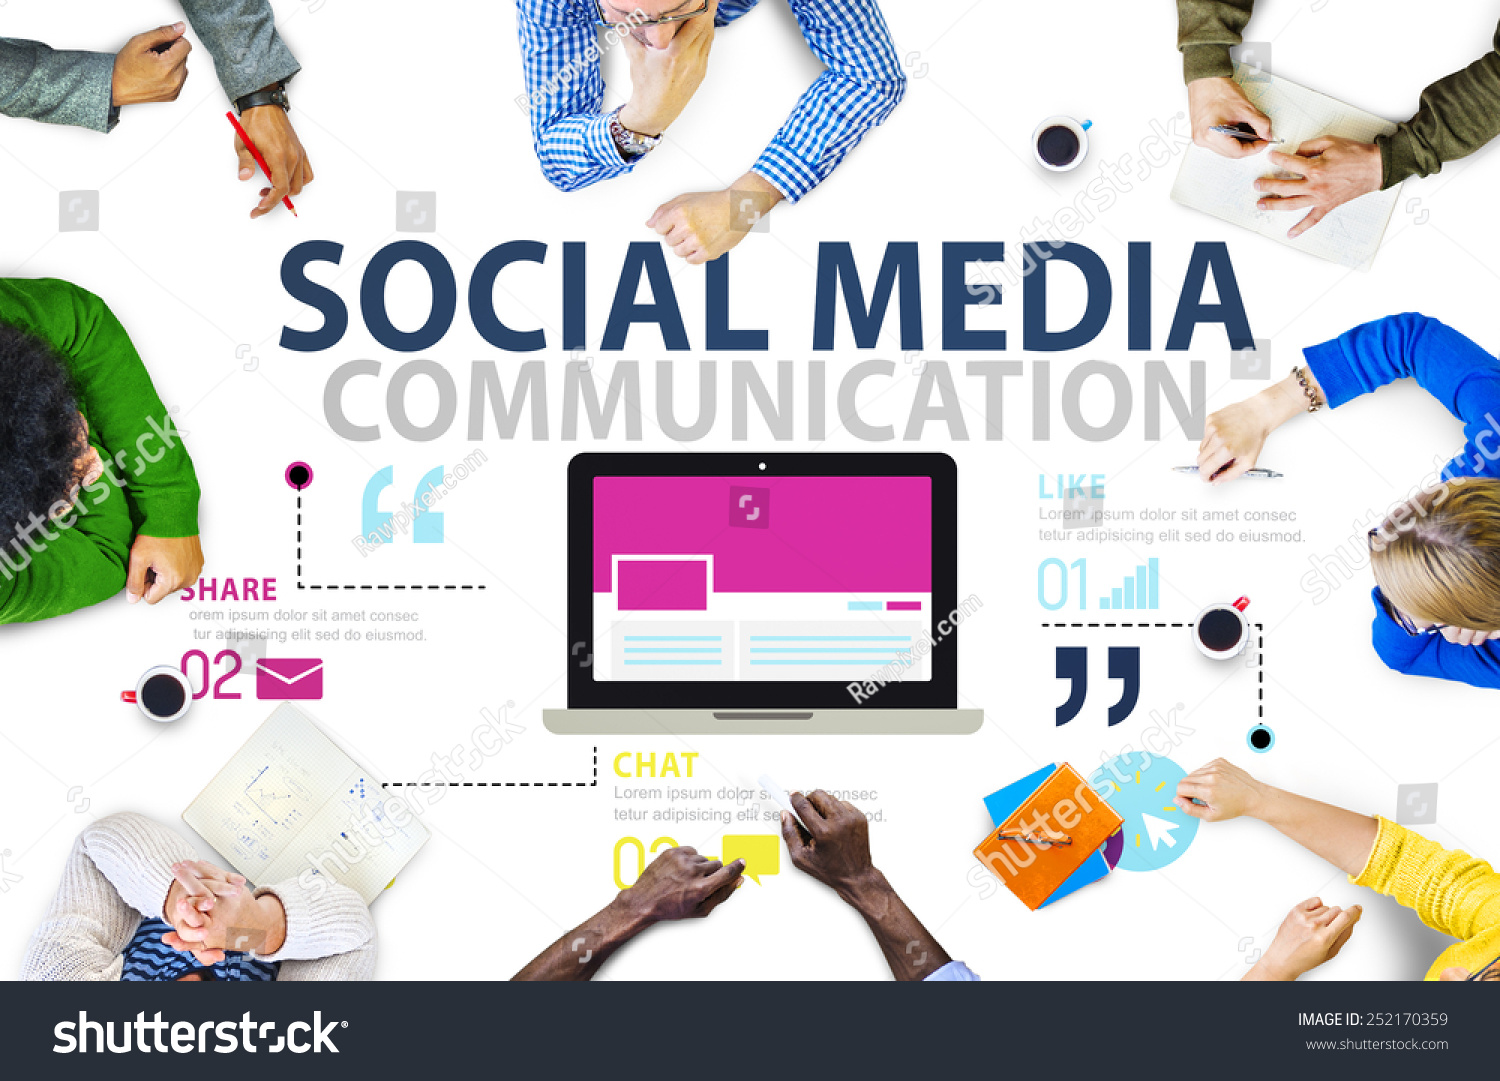 Social media and social networking technologies